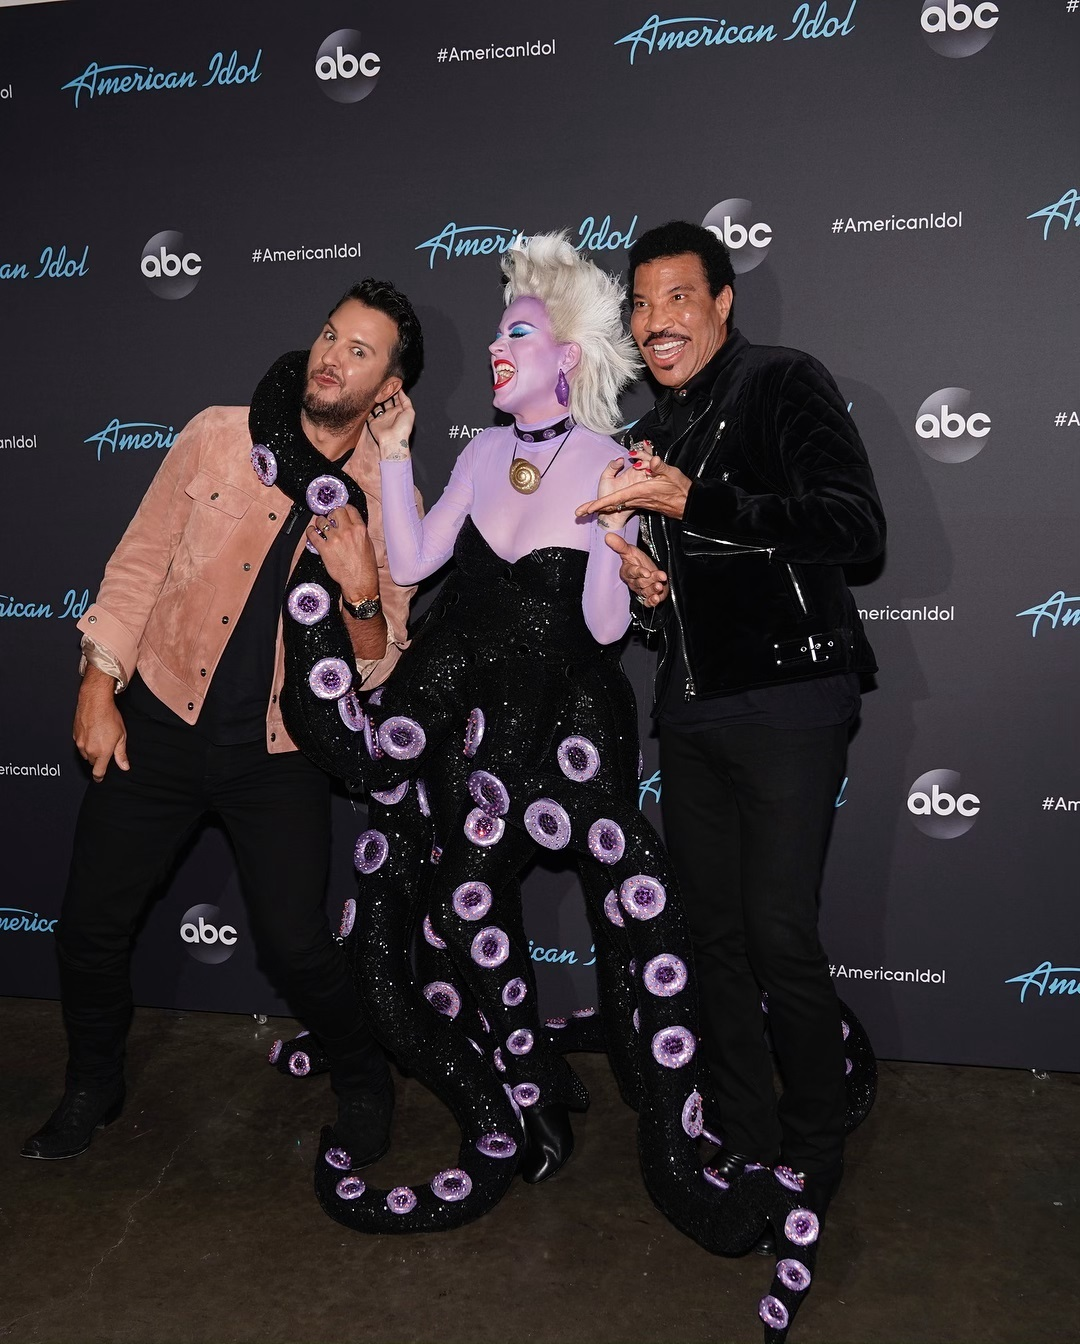 Katy Perry dresses up on cringeworthy Disney night in American Idol 1